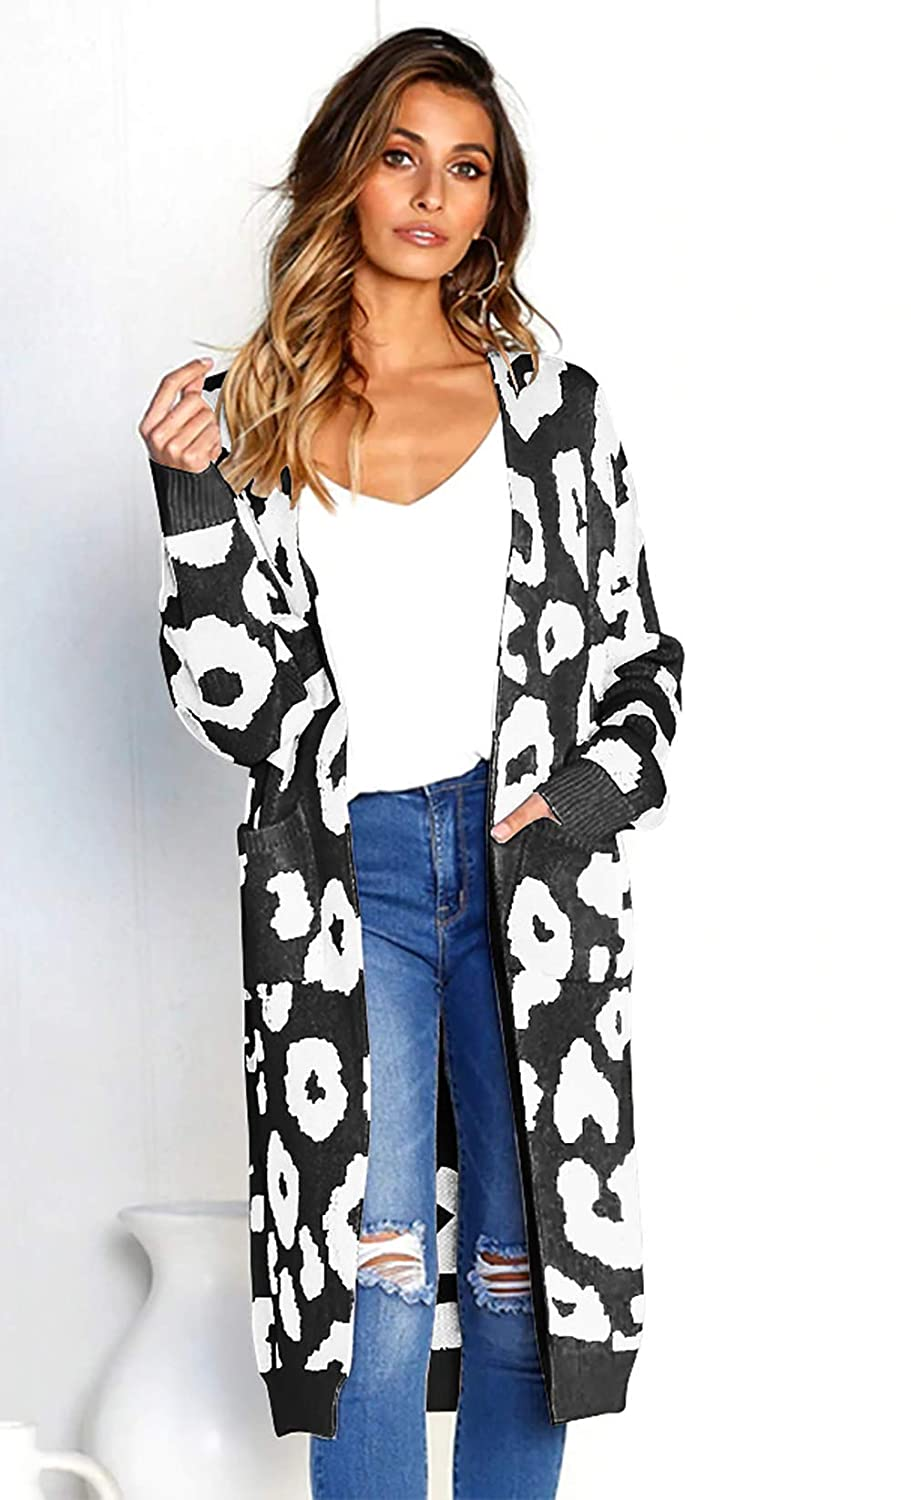 7deeff1dcb BTFBM Women Long Sleeve Open Front Leopard Knit Long Cardigan Casual Print  Knitted Maxi Sweater Coat Outwear with Pockets at Amazon Women s Clothing  store